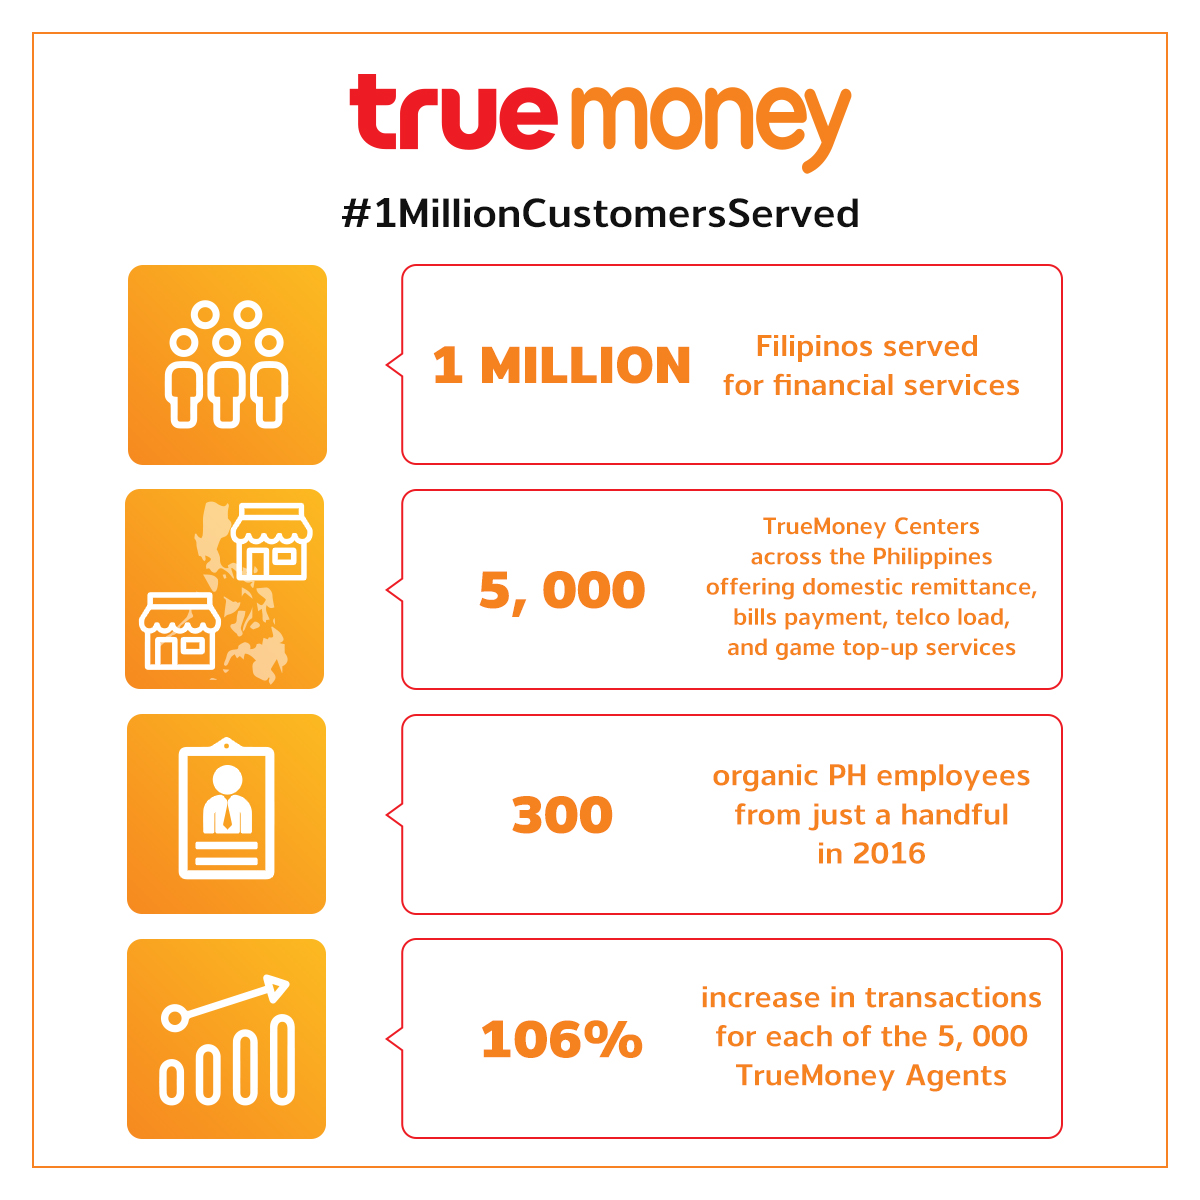 TrueMoney reaches 1Million